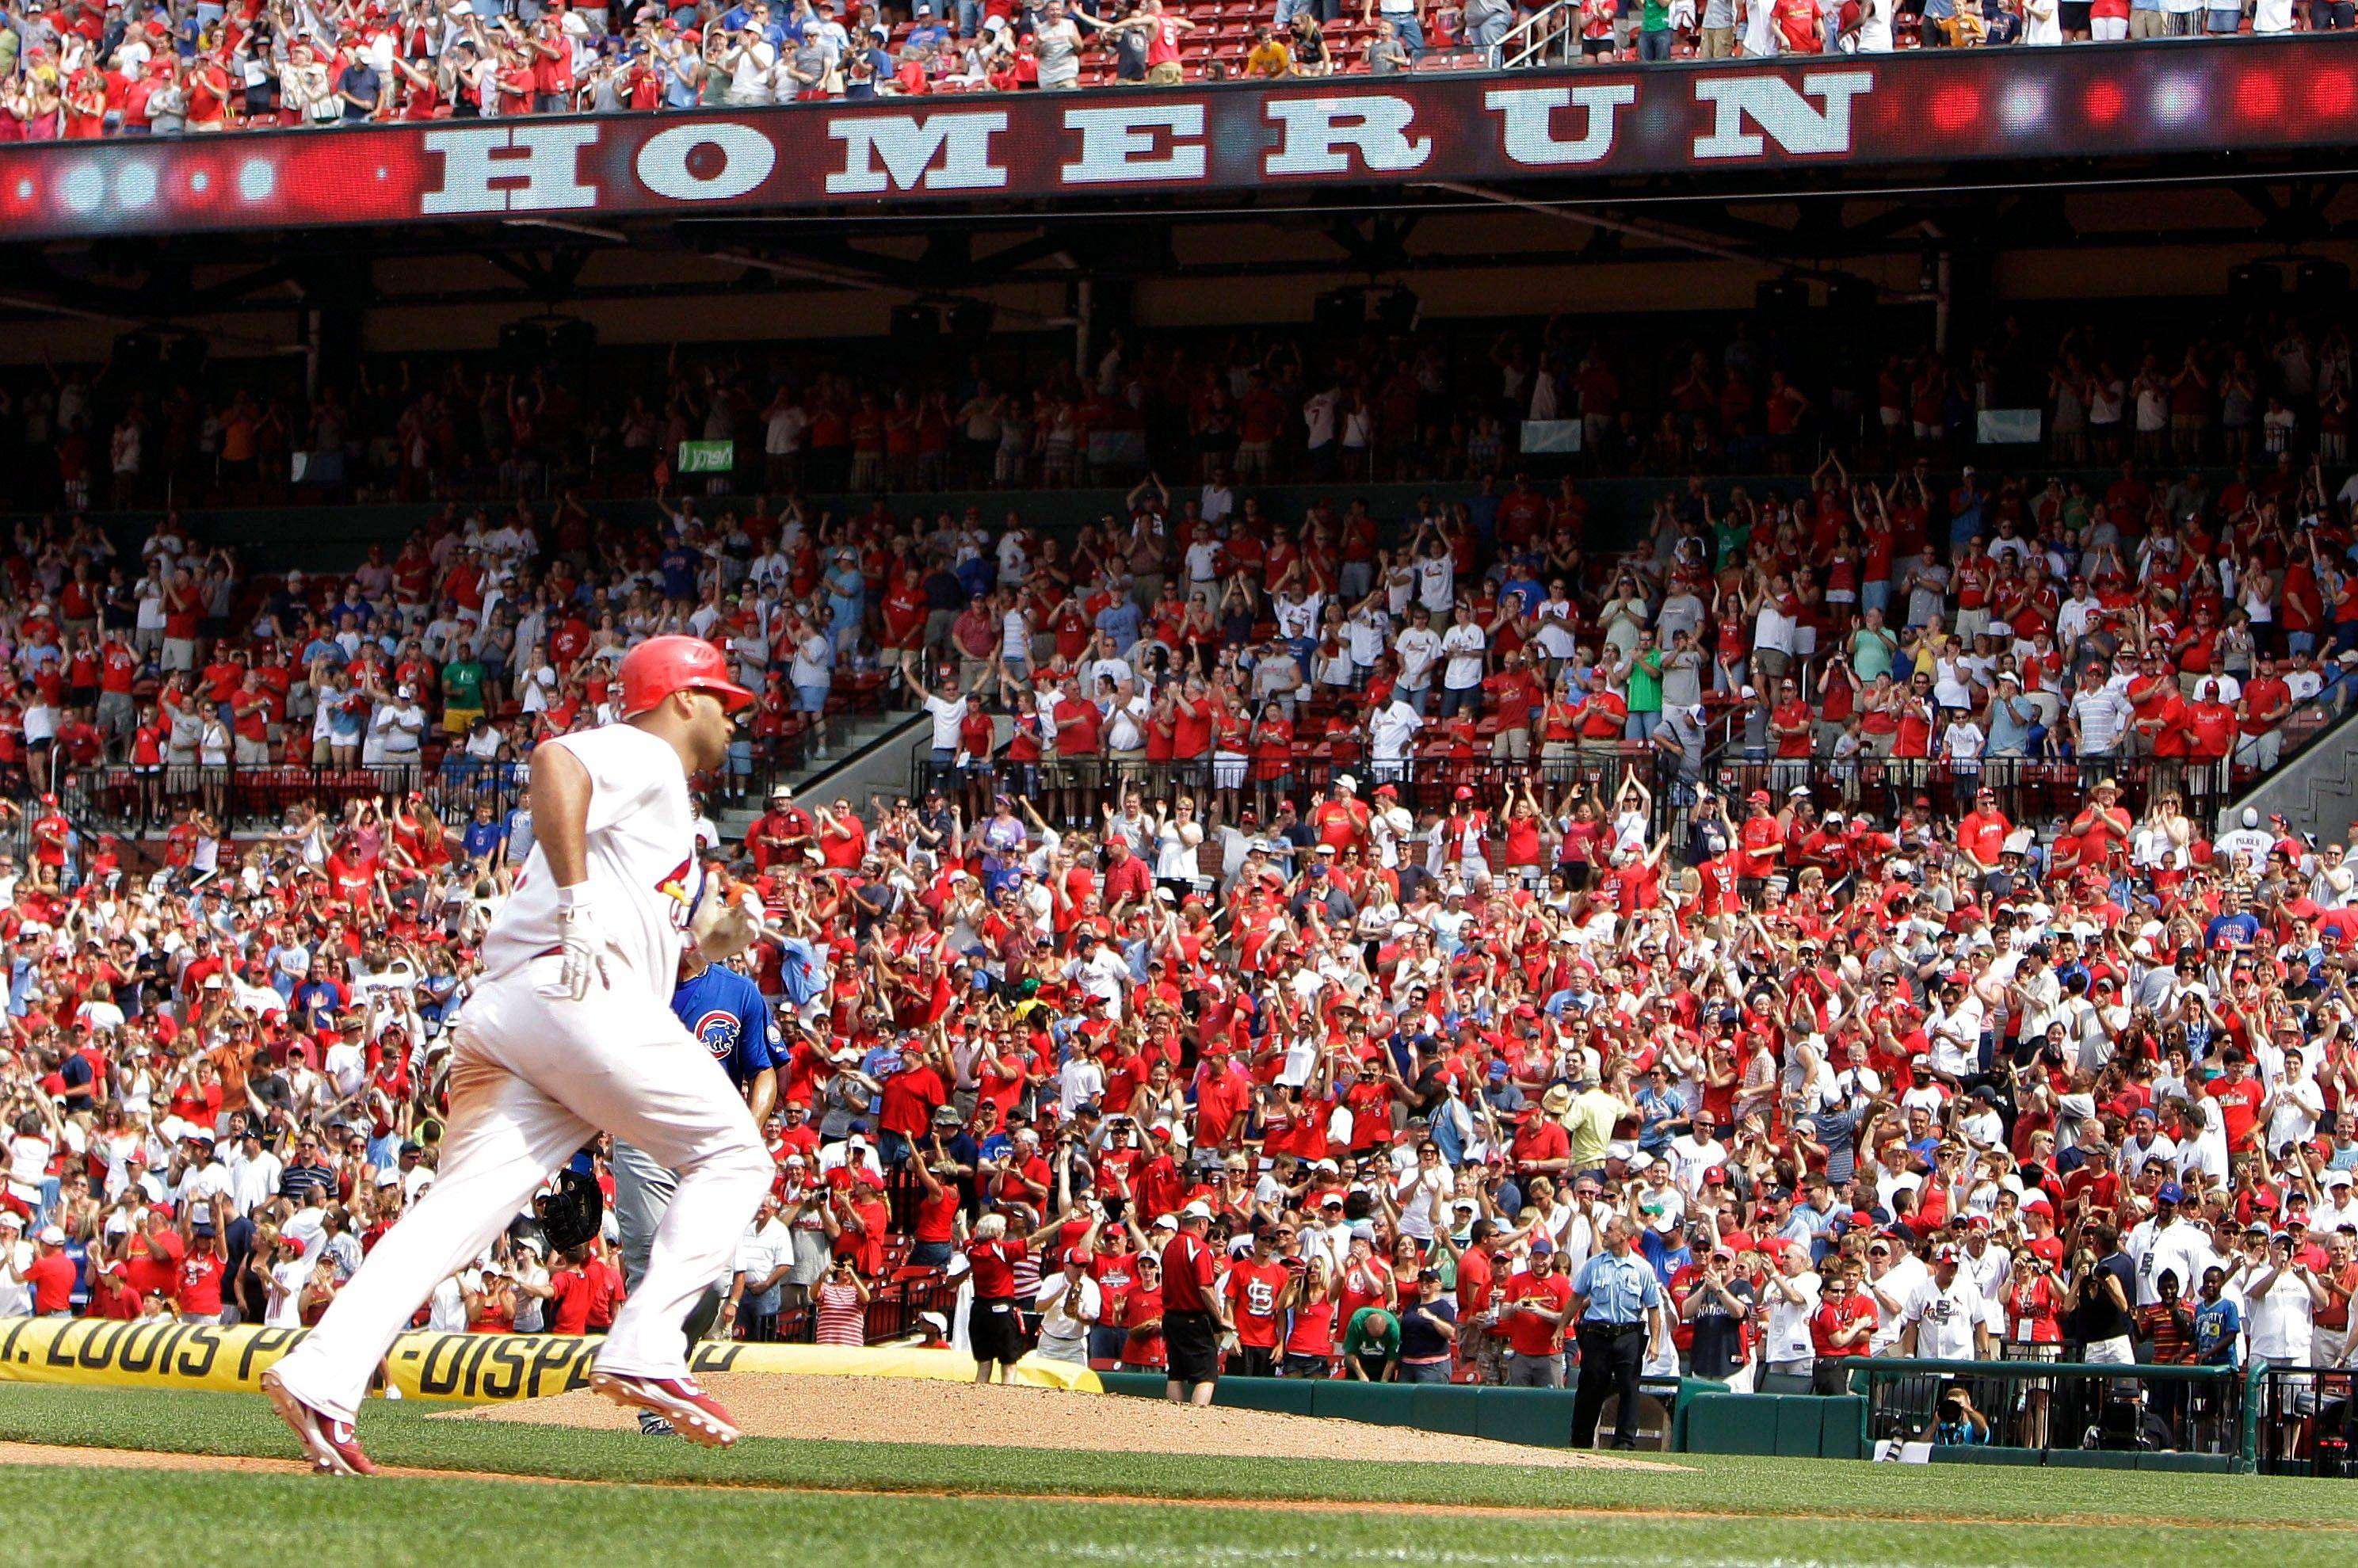 St. Louis Cardinals' slugger Albert Pujols rounds third and heads for home after hitting a walkoff home run to defeat the Cubs 3-2 in Sunday's 10th inning.